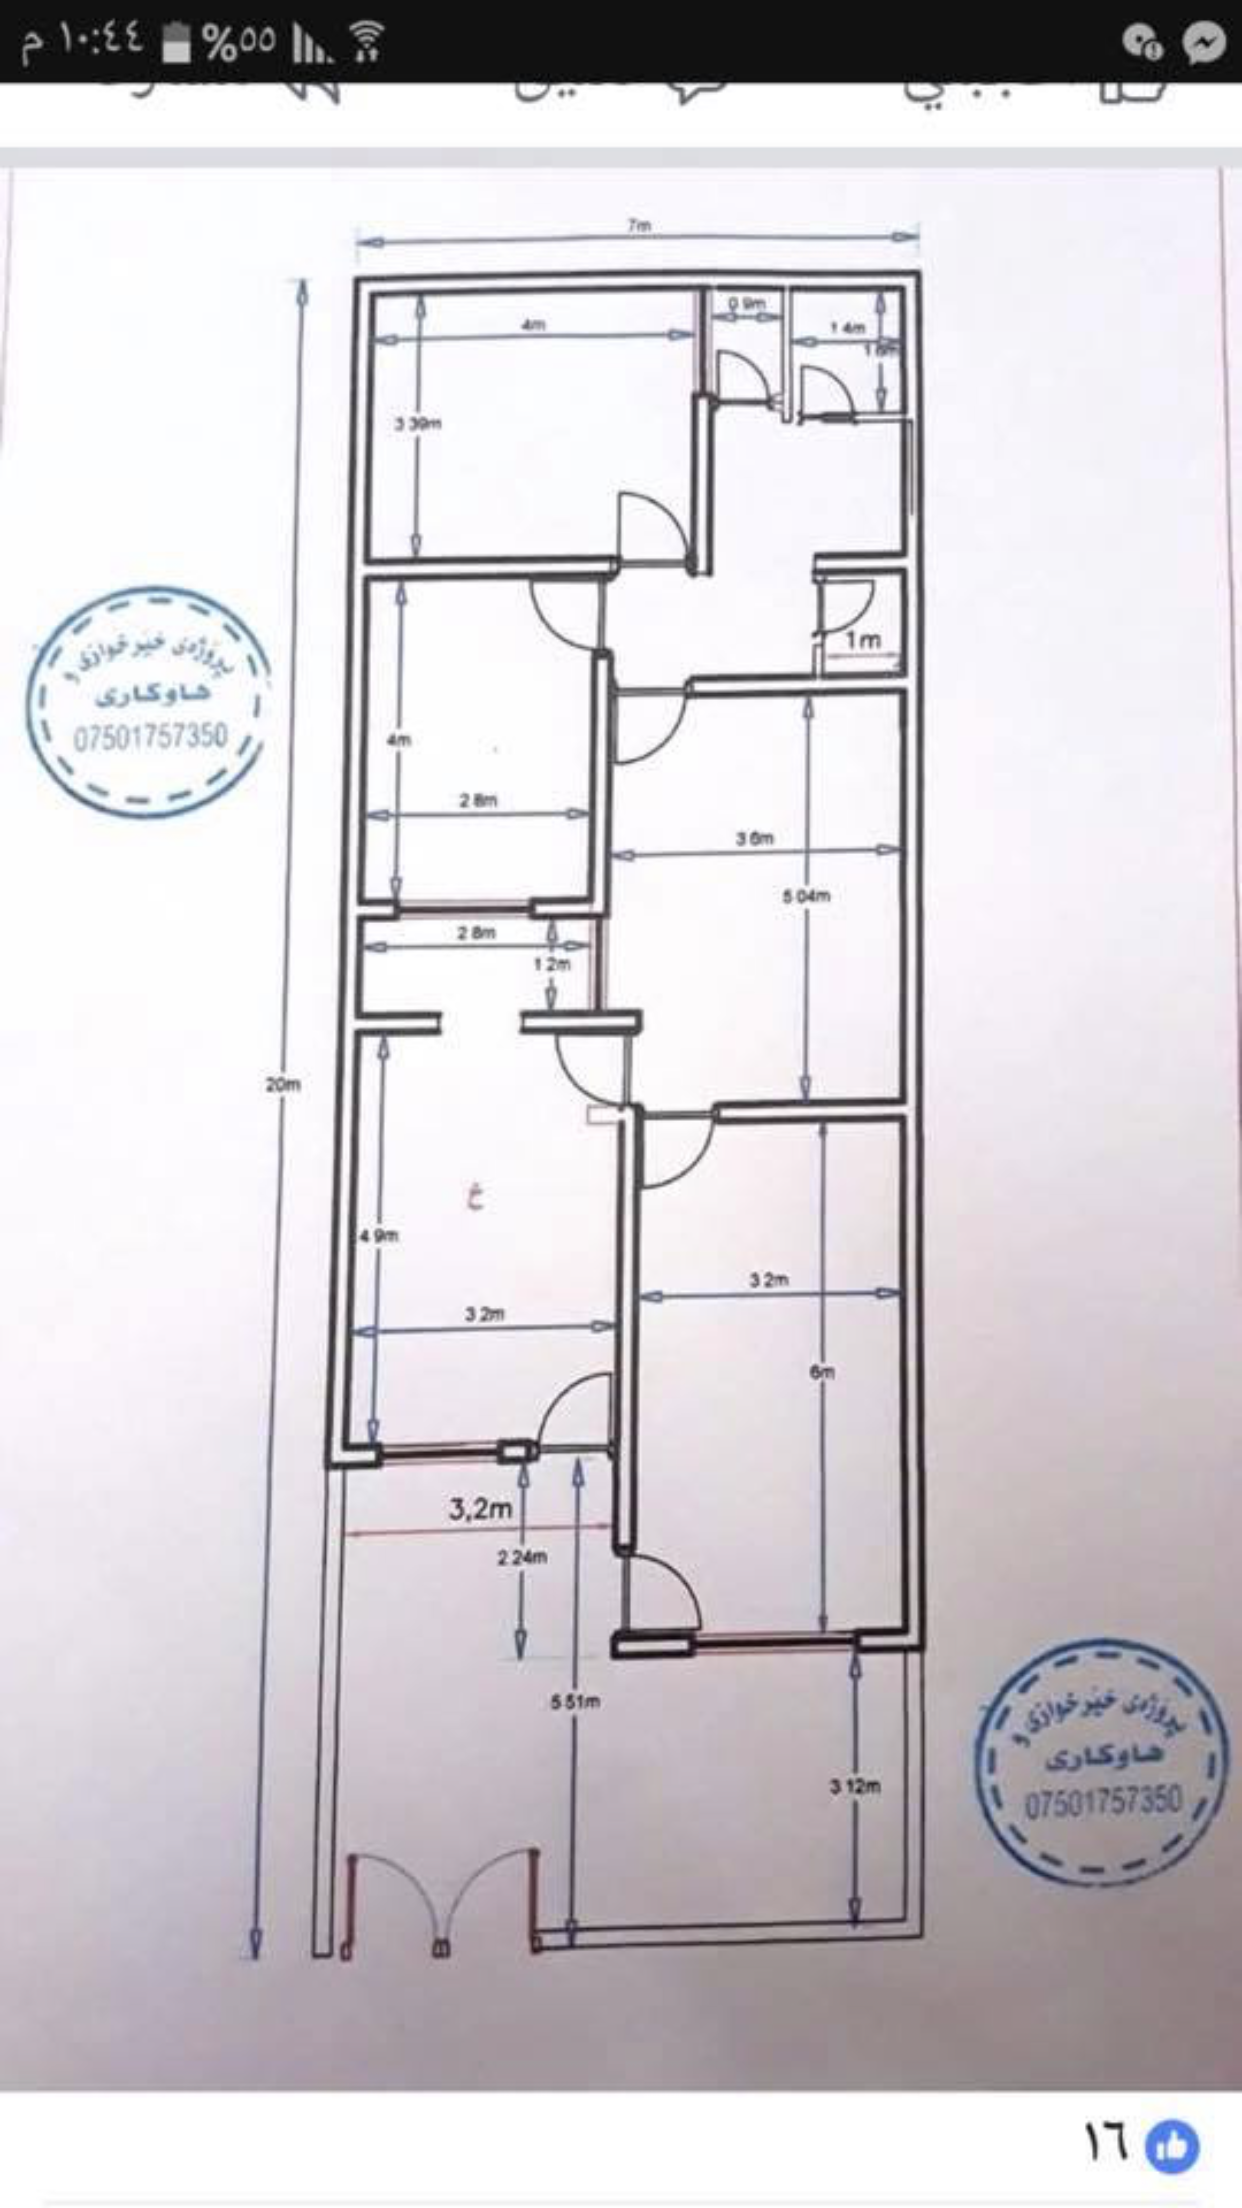 Pin By Dhefaf Alabady On Iraq Plan House Design House Plans Design